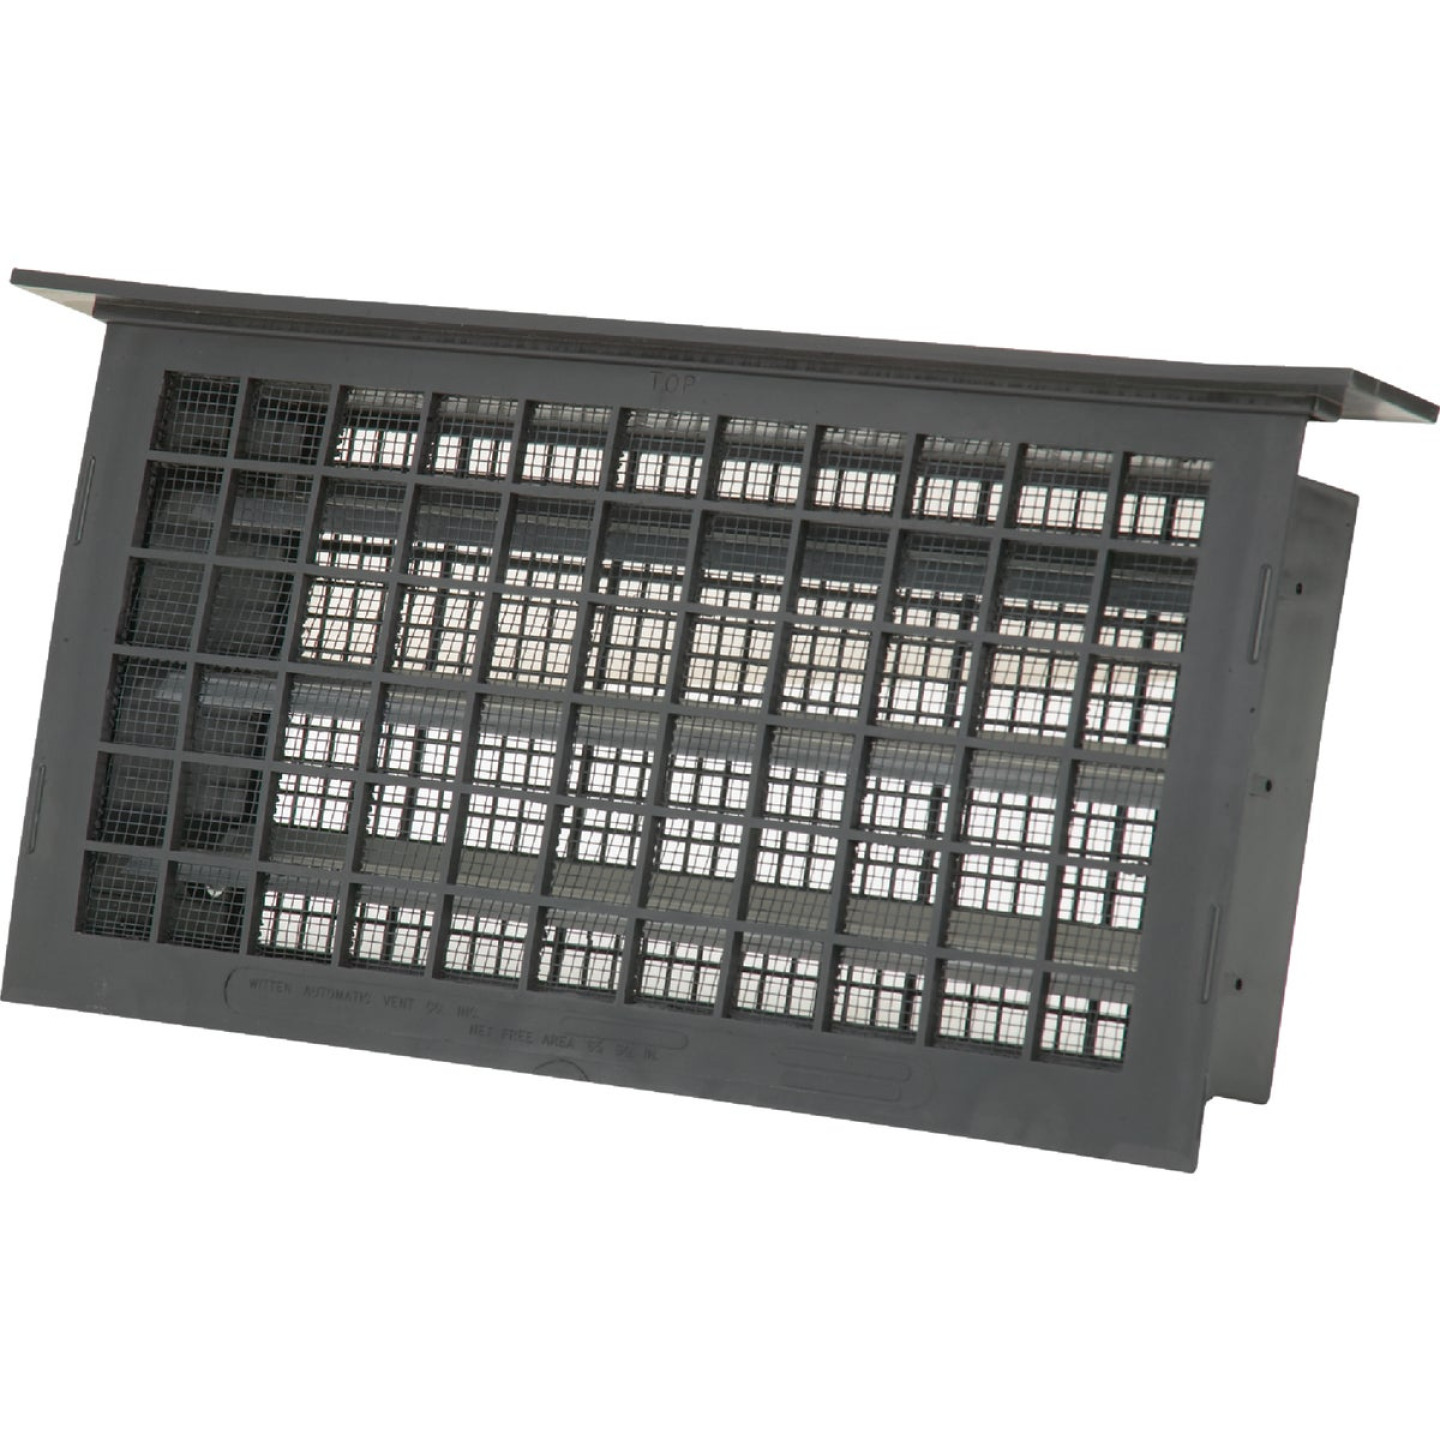 Witten 8 In. x 16 In. Black Automatic Foundation Ventilator with Lintel Image 1